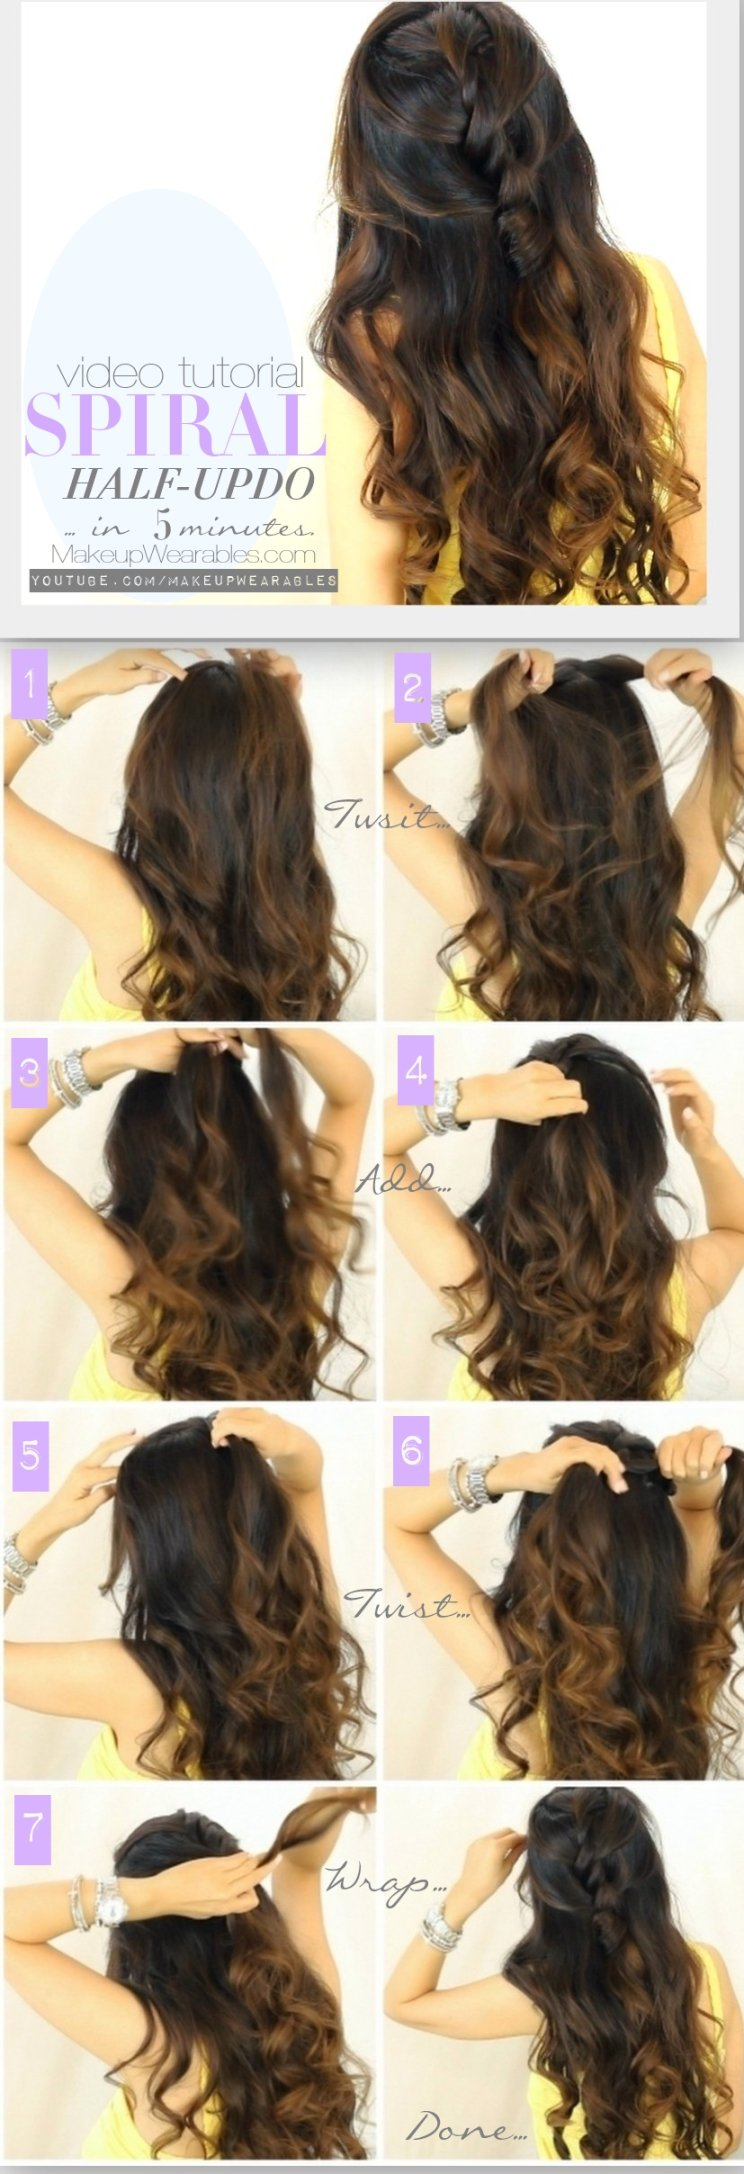 12 half up half down hair tutorials you must have - pretty designs